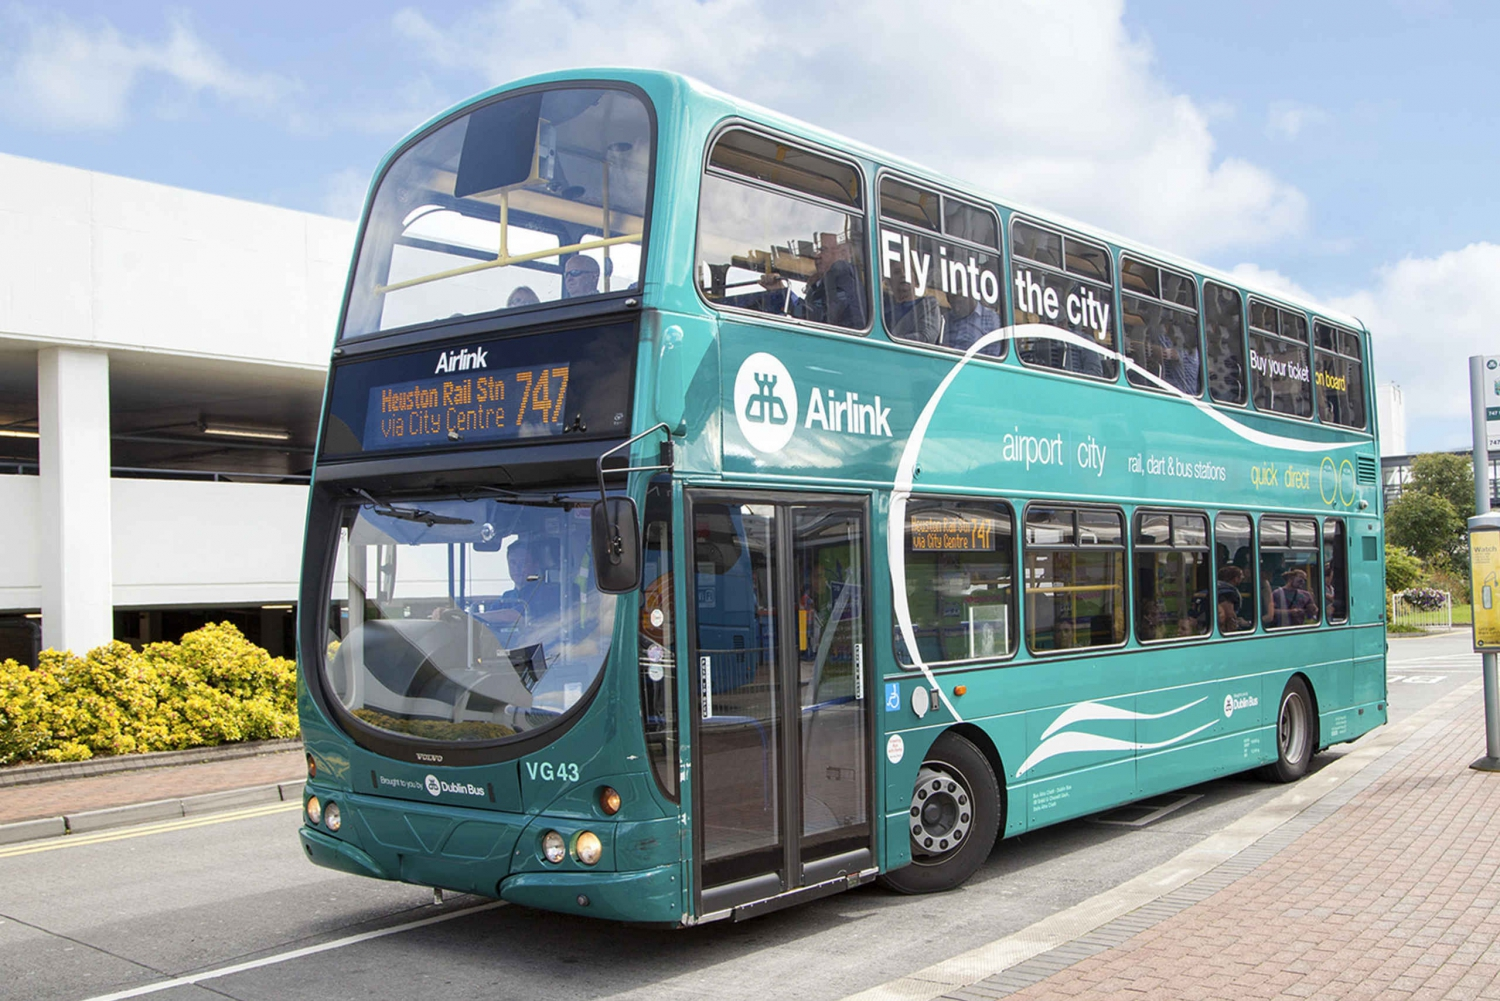 Airlink Express: Dublin Airport to Dublin's City Center